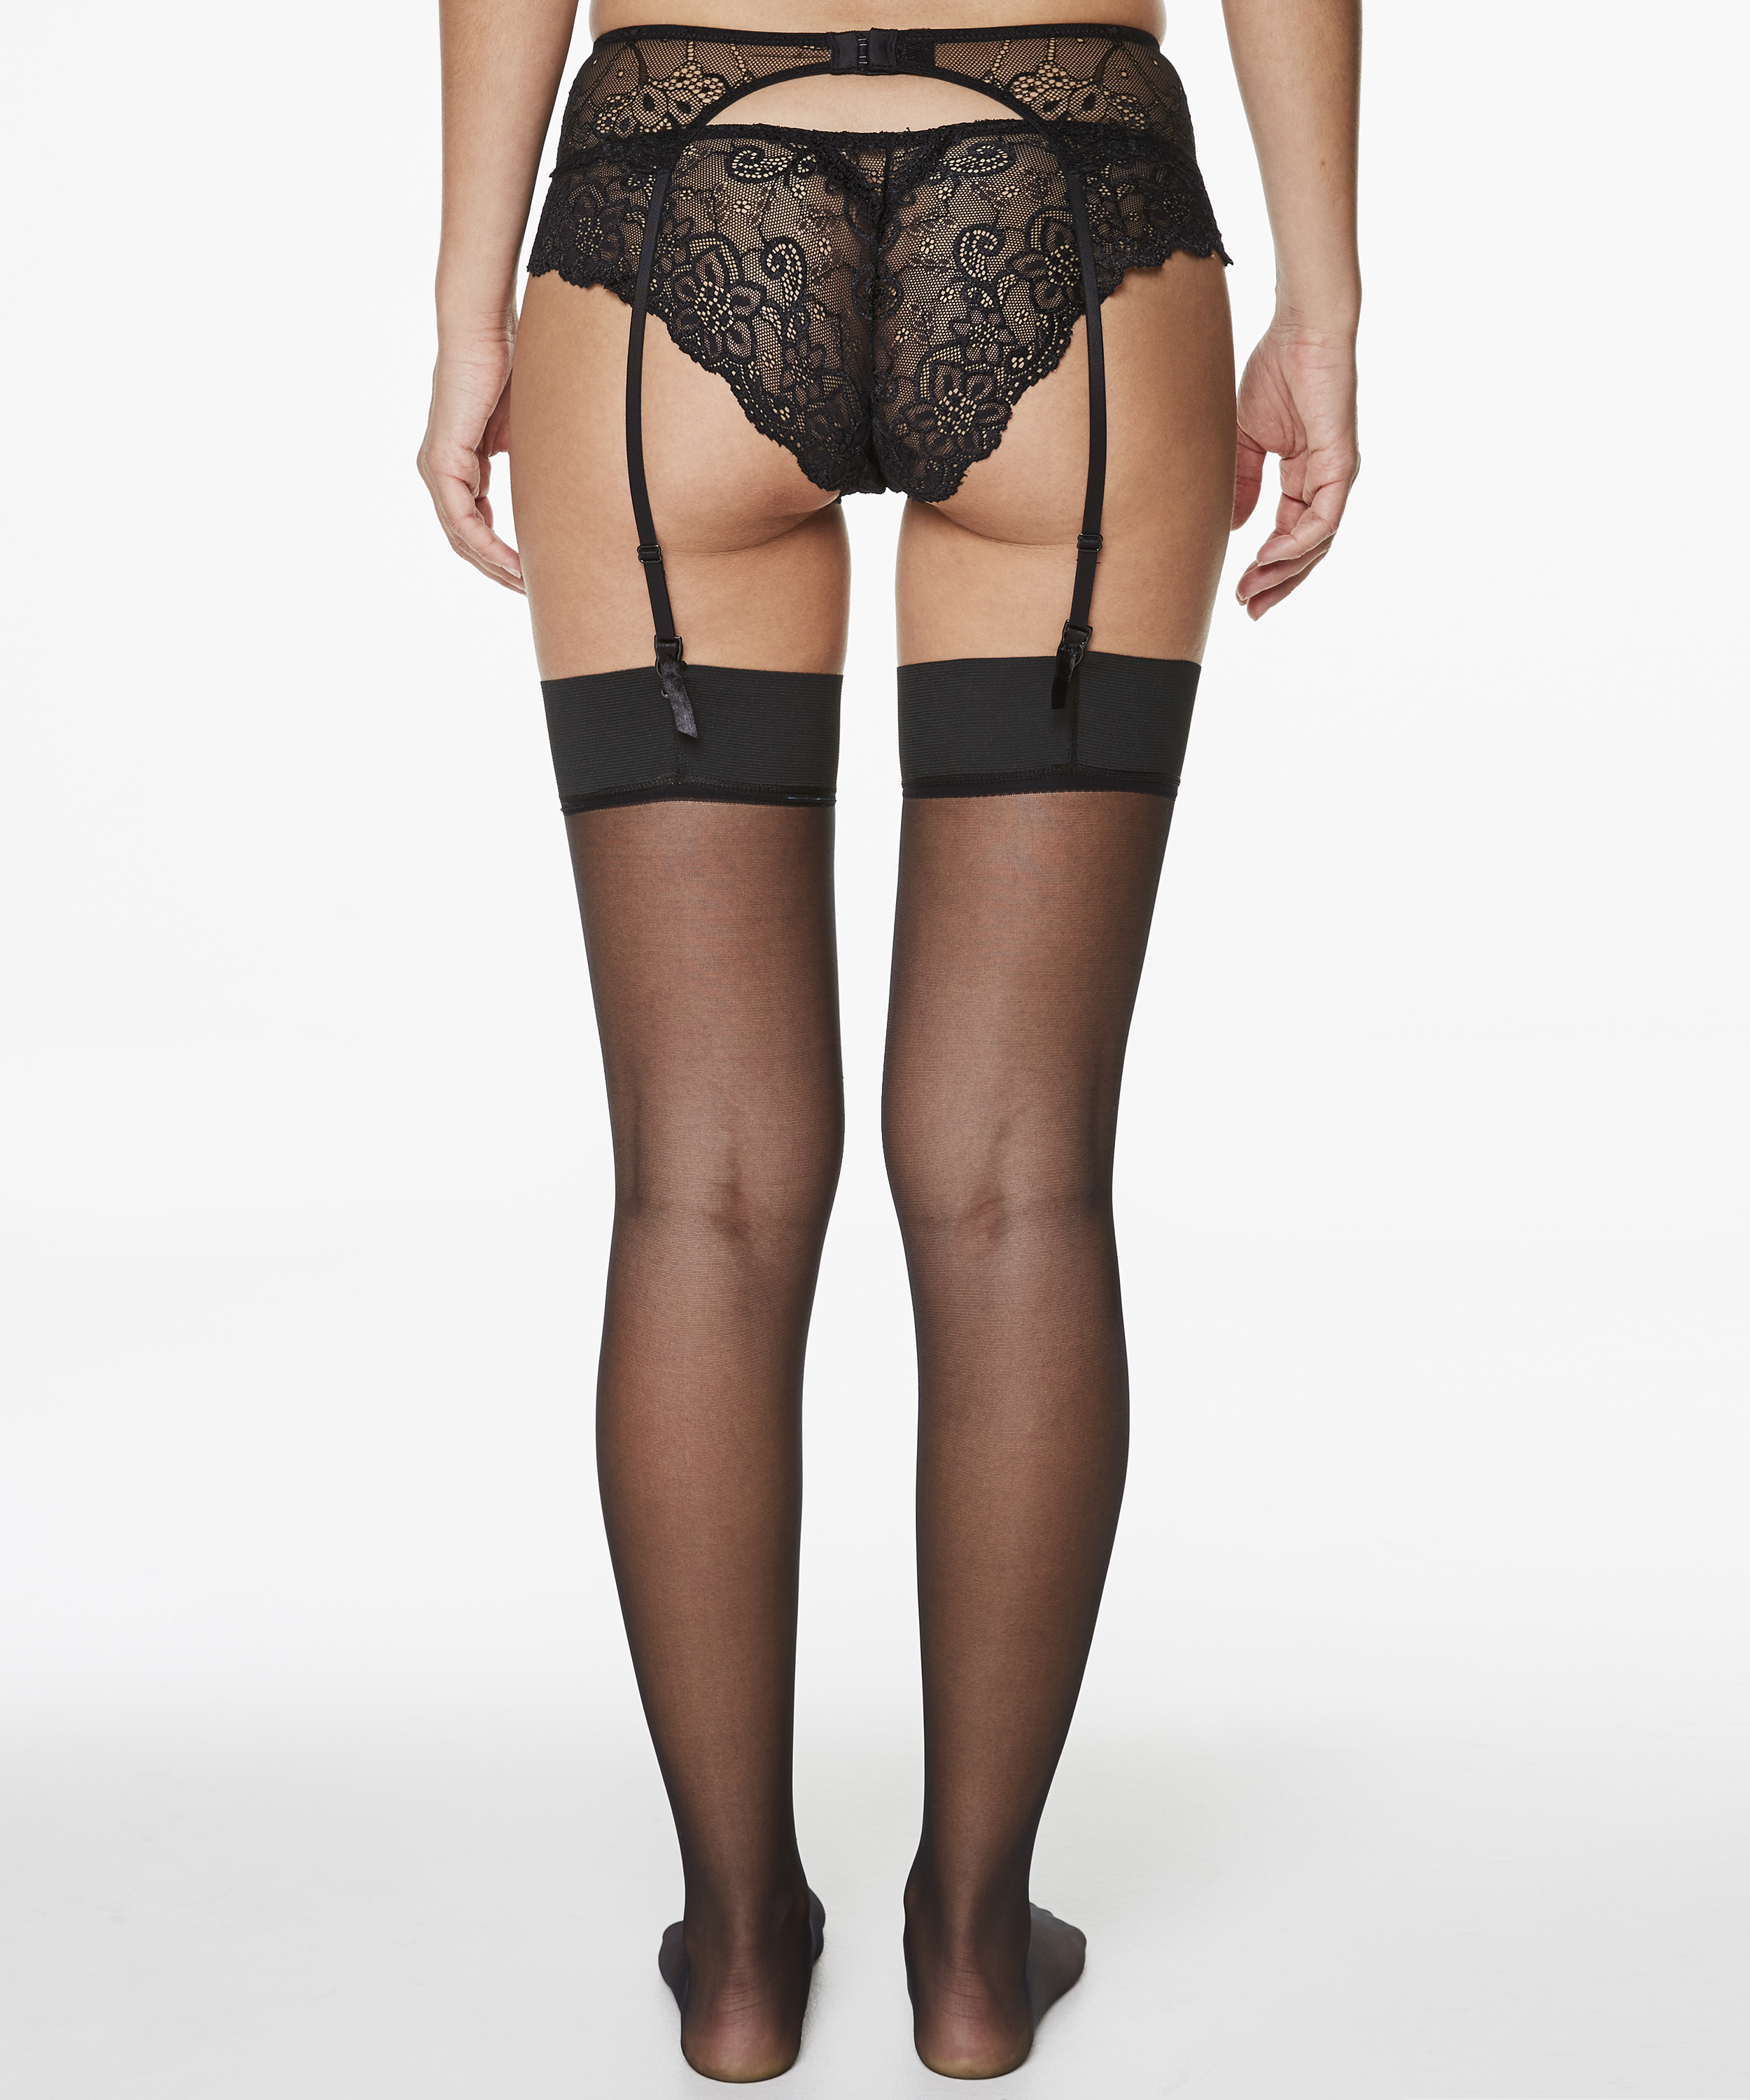 Stockings 15 Denier Clean Edge, Schwarz, main